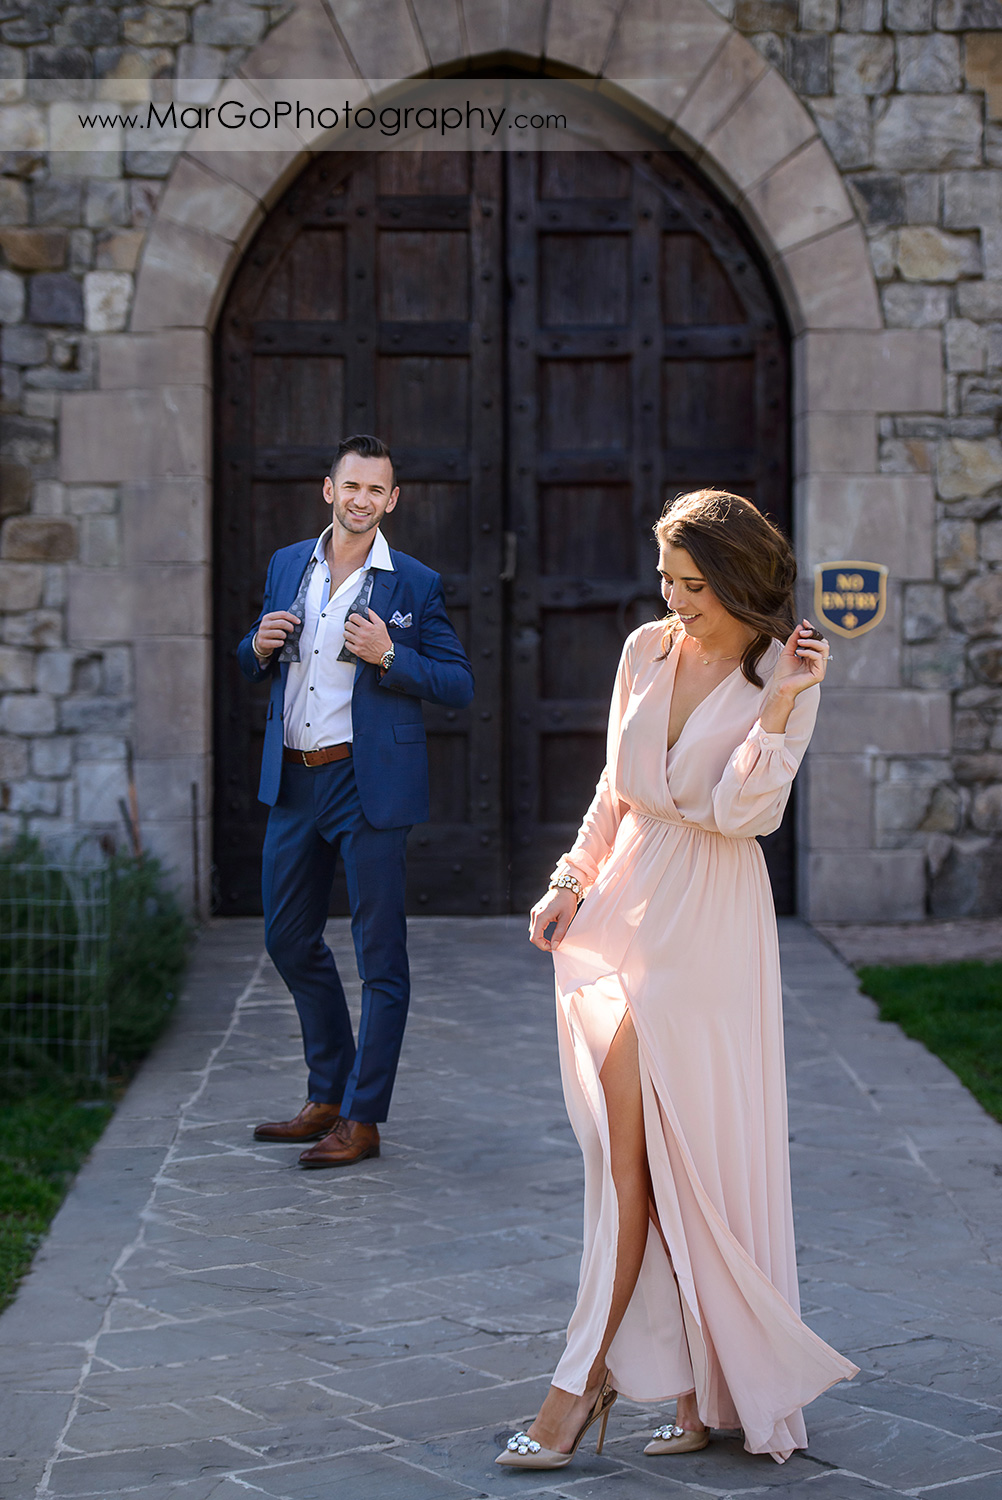 full body portrait of woman in pink dress standing in front of man in blue suit during Napa Valley engagement session at Castello di Amorosa in Calistoga